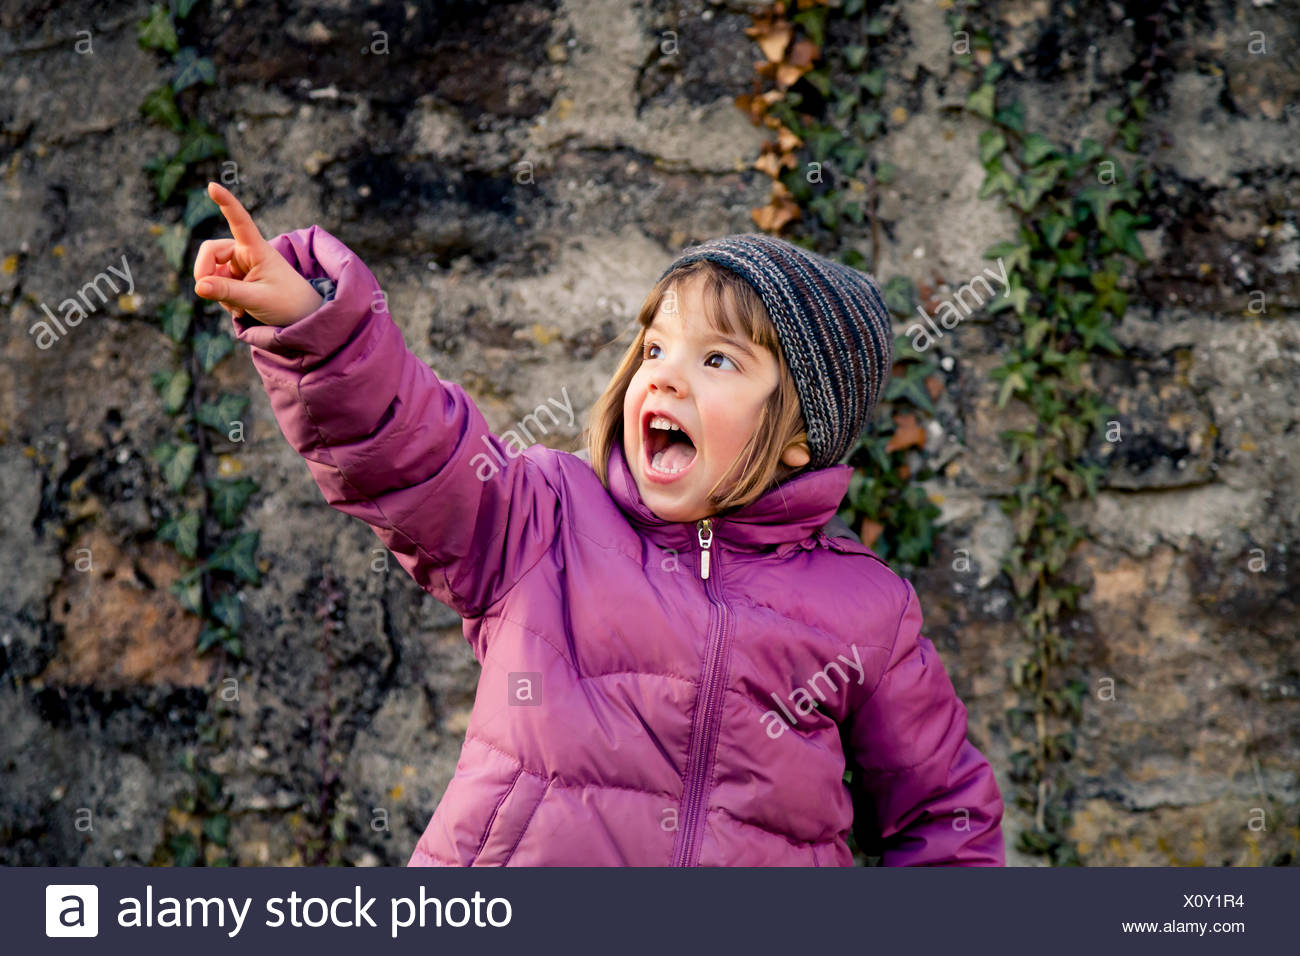 Excited girl wearing woolly hat and pink winter jacket pointing at something - Stock Image